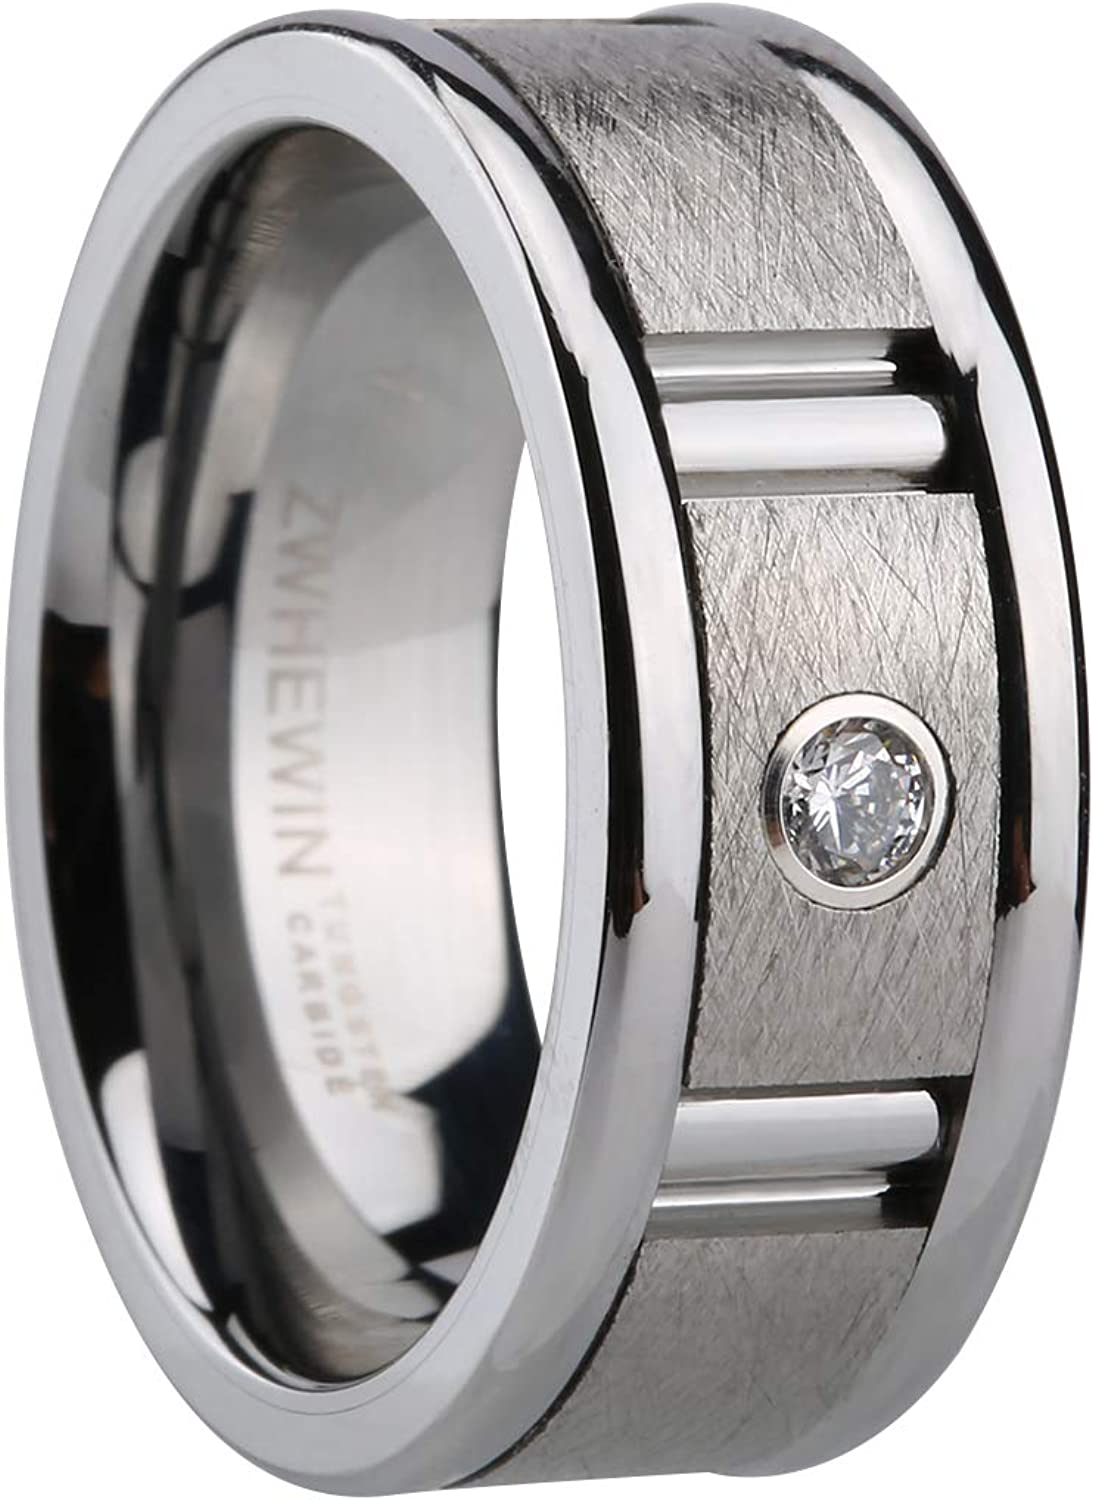 HEWINZW Tungsten Rings Online limited product for Men Philadelphia Mall Brick Silver 9mm Pattern Brushed